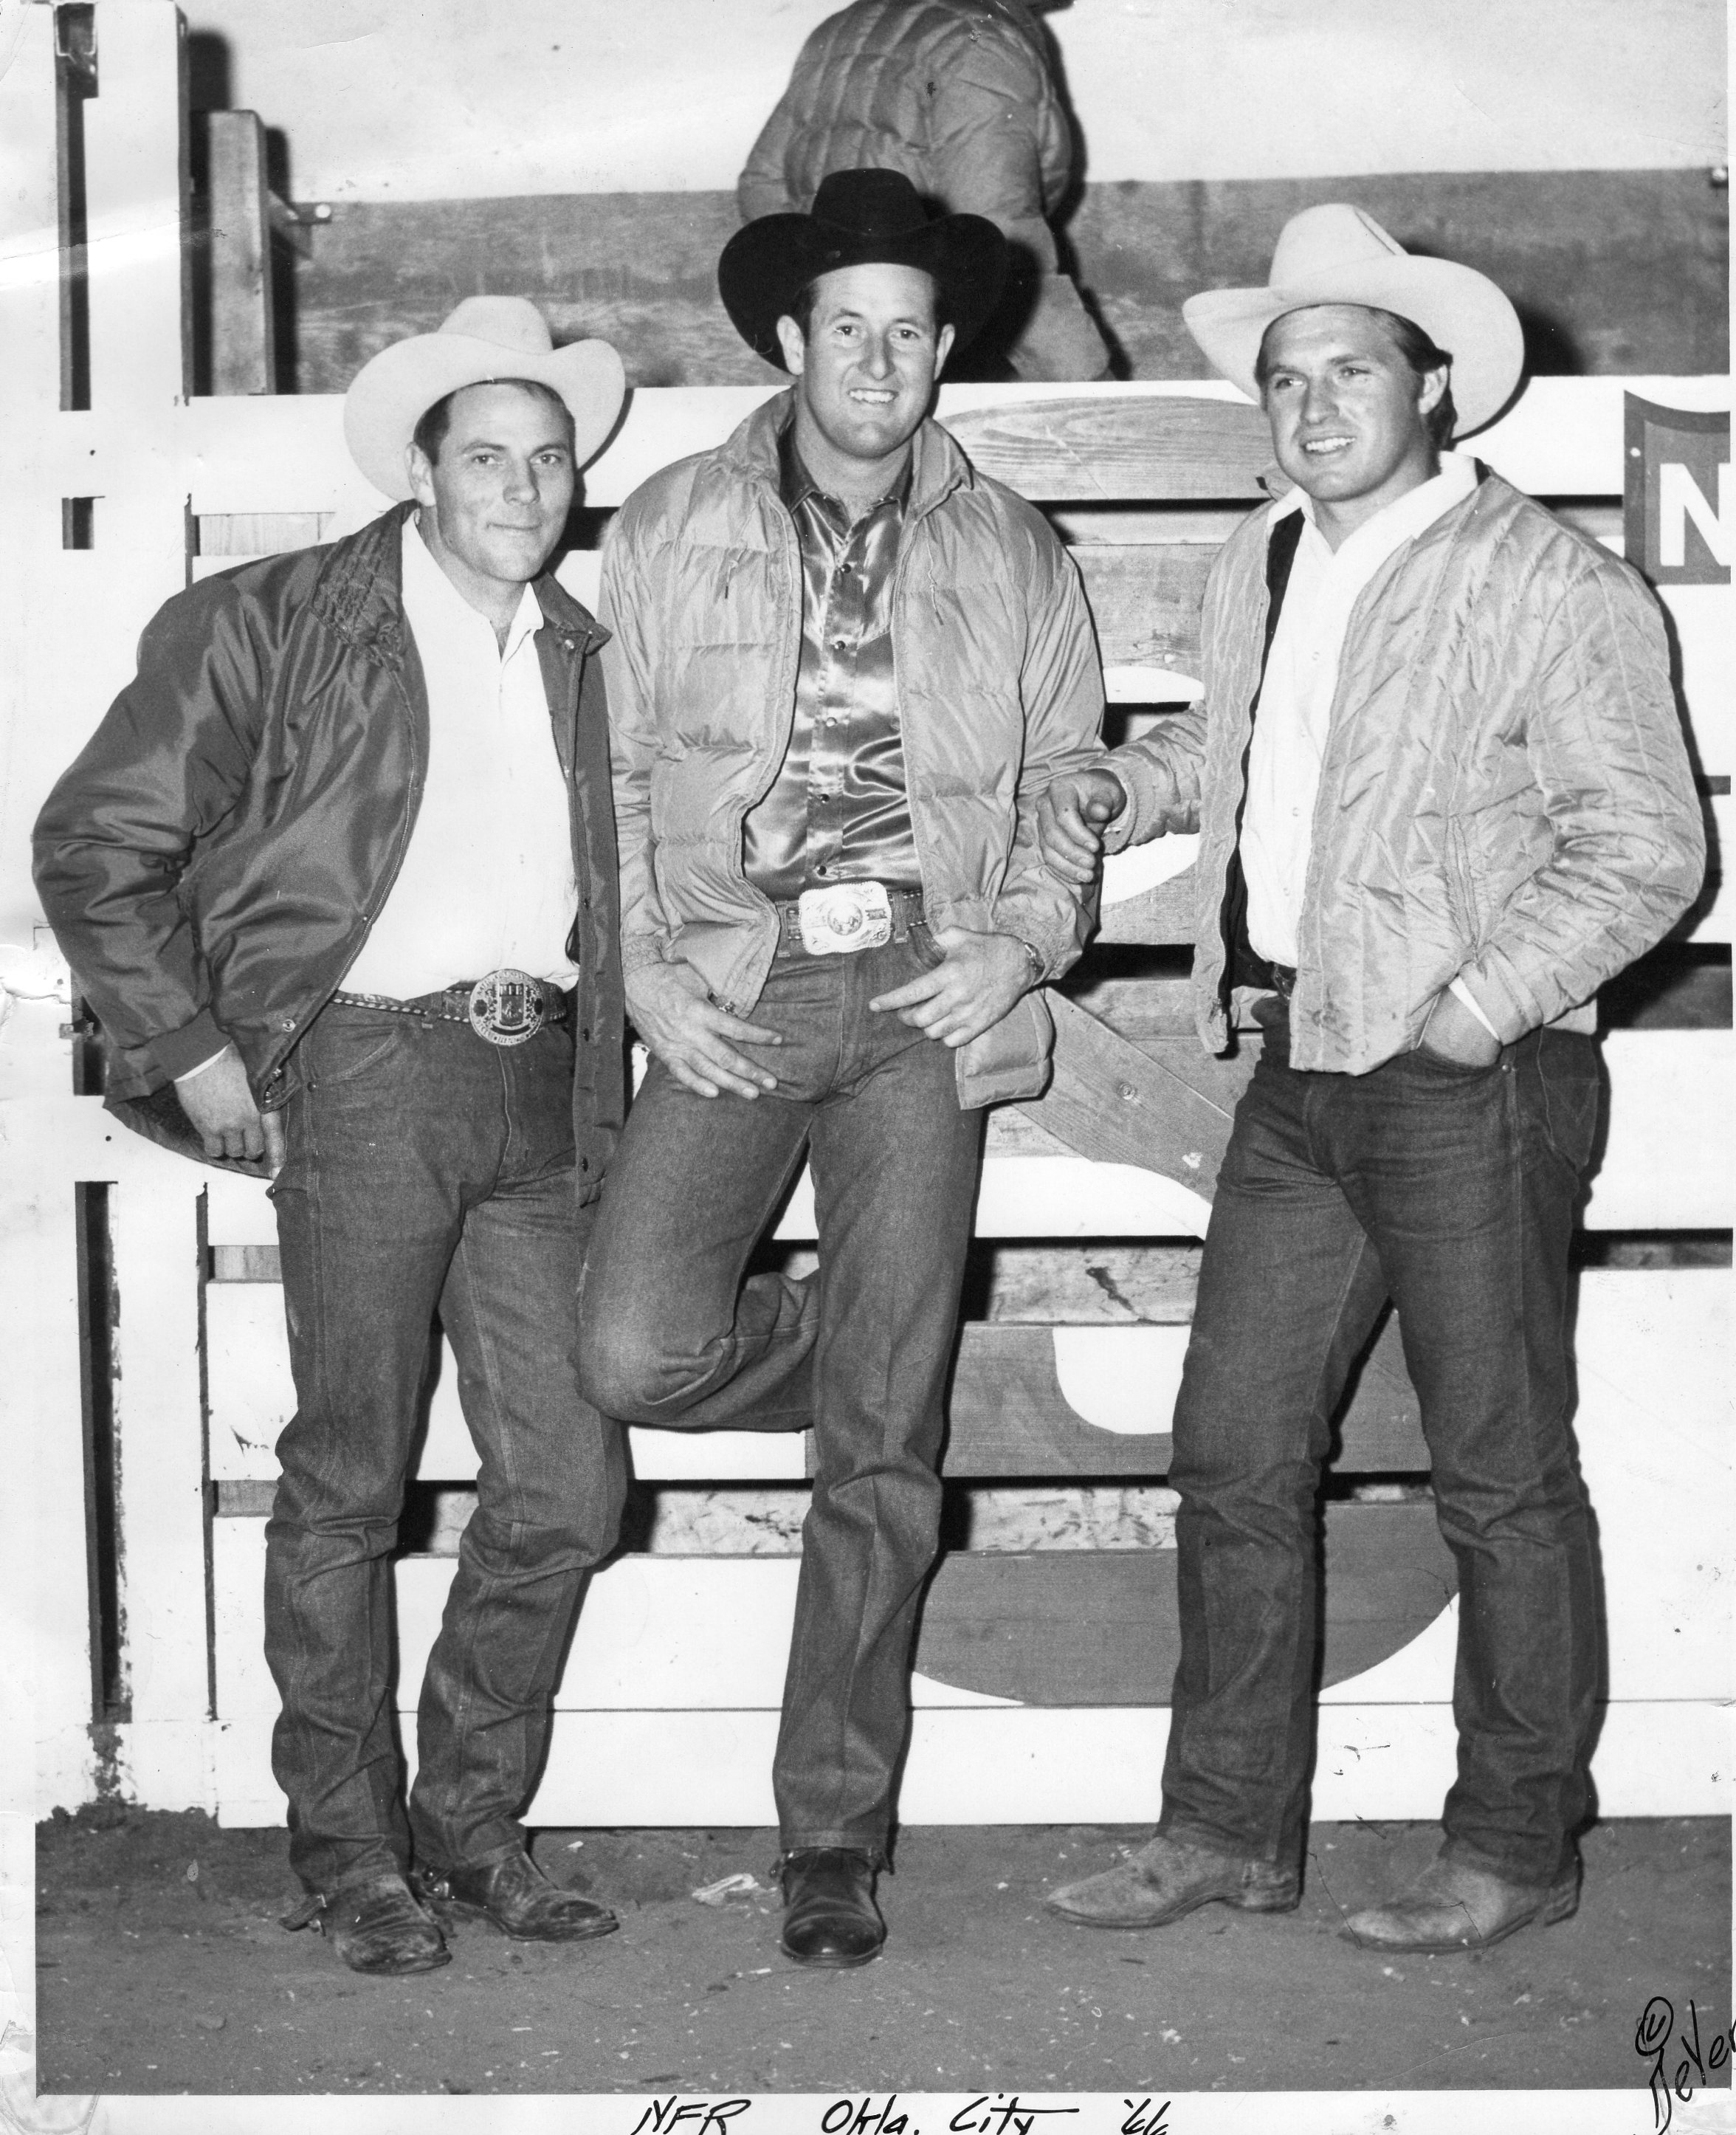 1966 NFR Oklahoma Photo DeVere